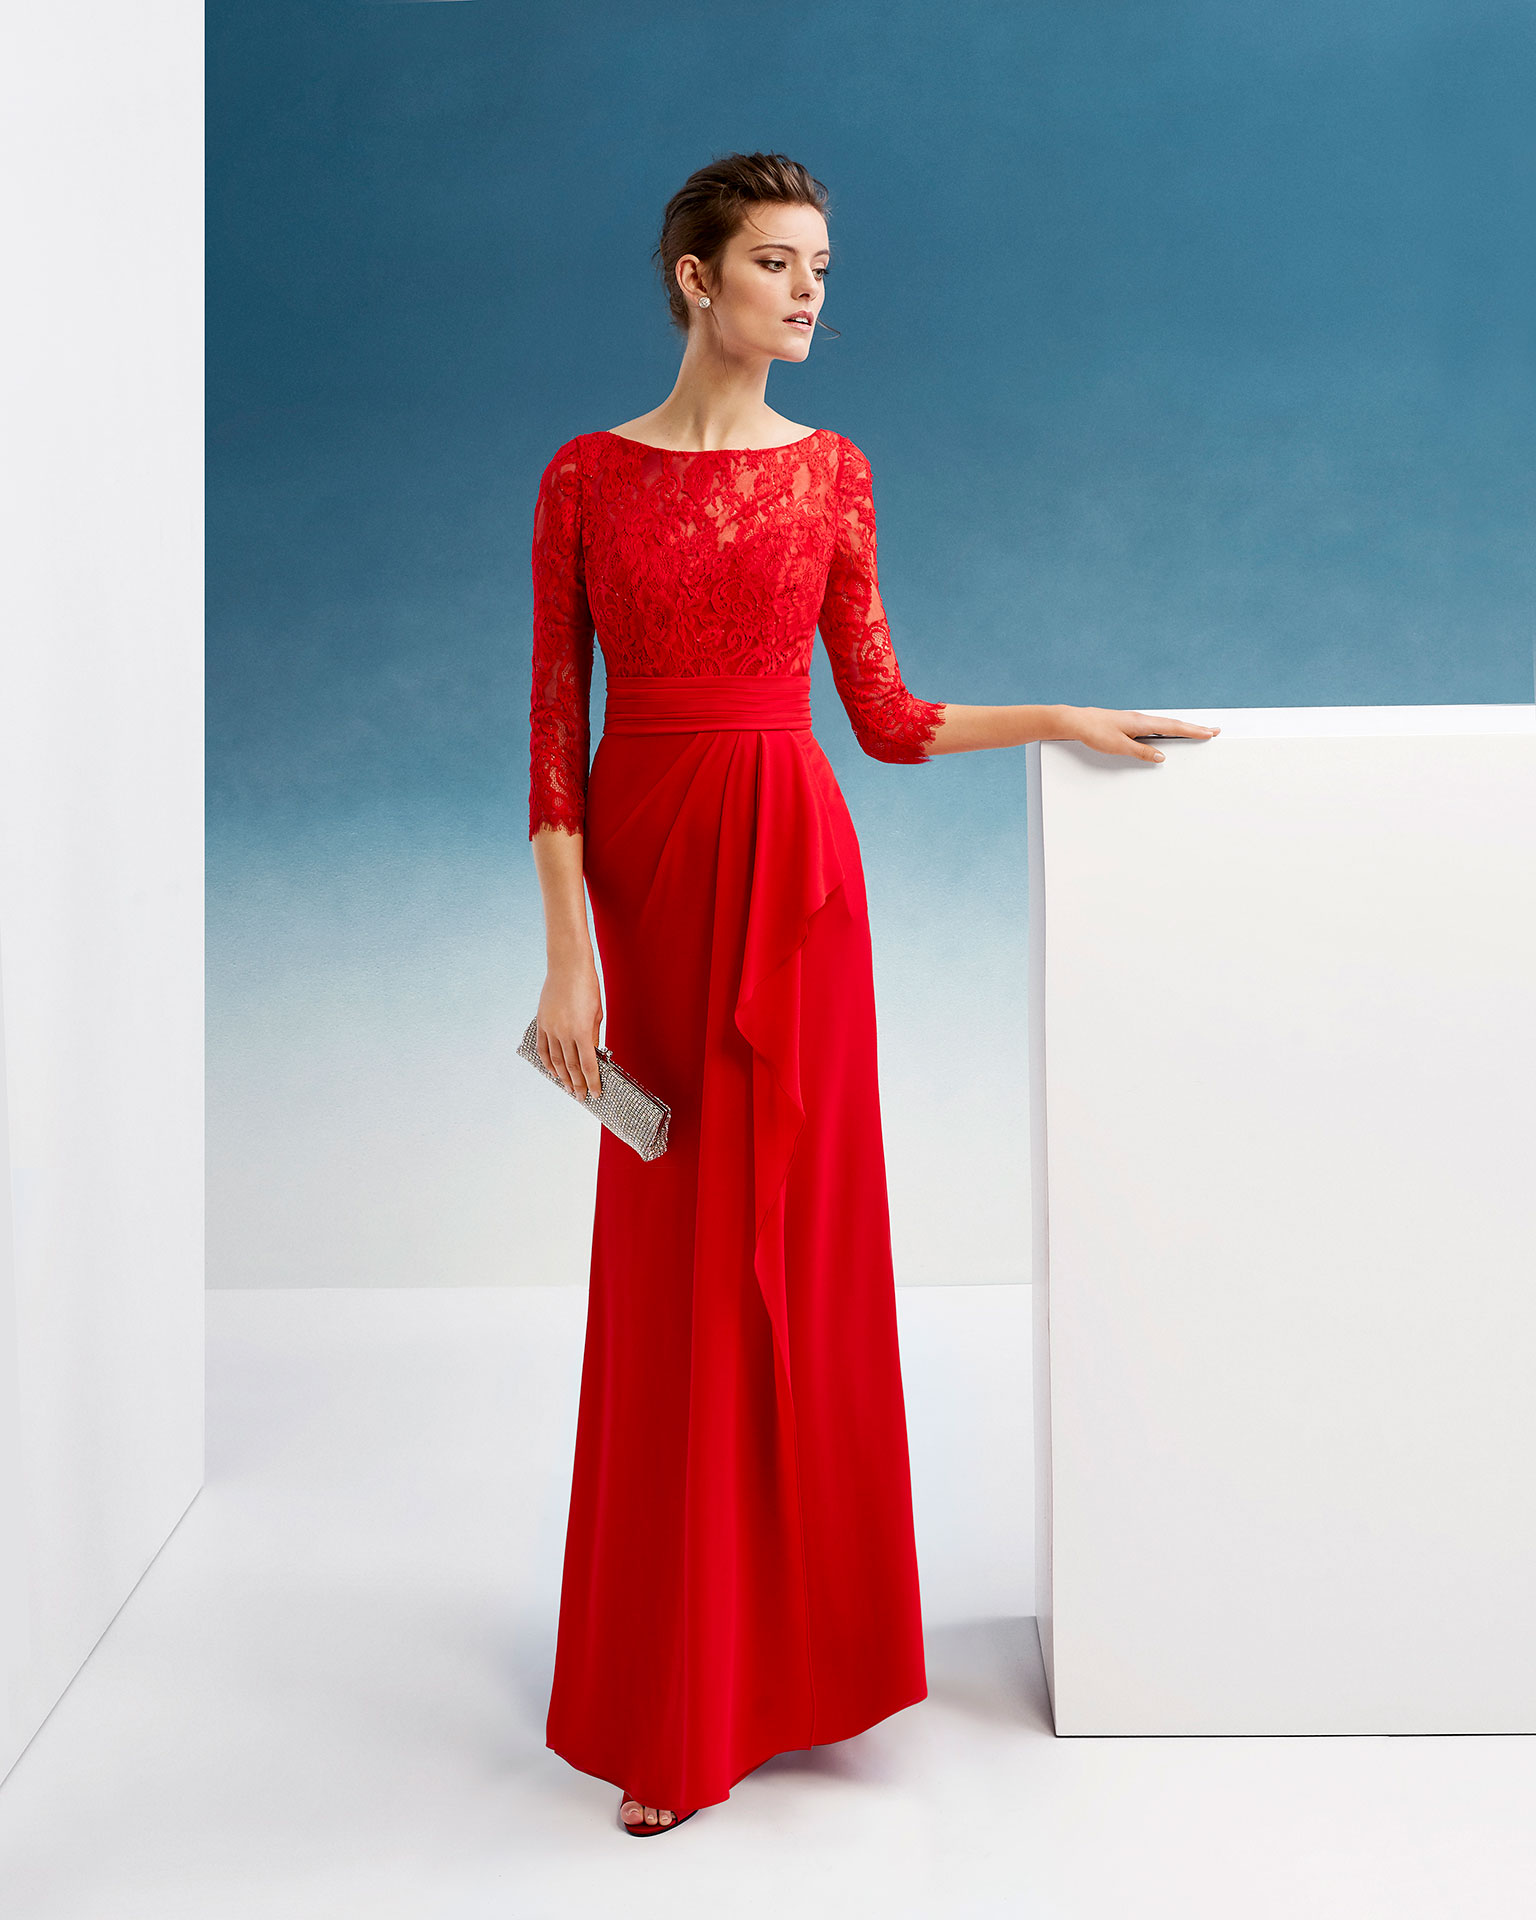 Crepe Georgette and lace cocktail dress. Round neckline, three-quarter sleeves and skirt with side flounce. 2019 FIESTA AIRE BARCELONA Collection.